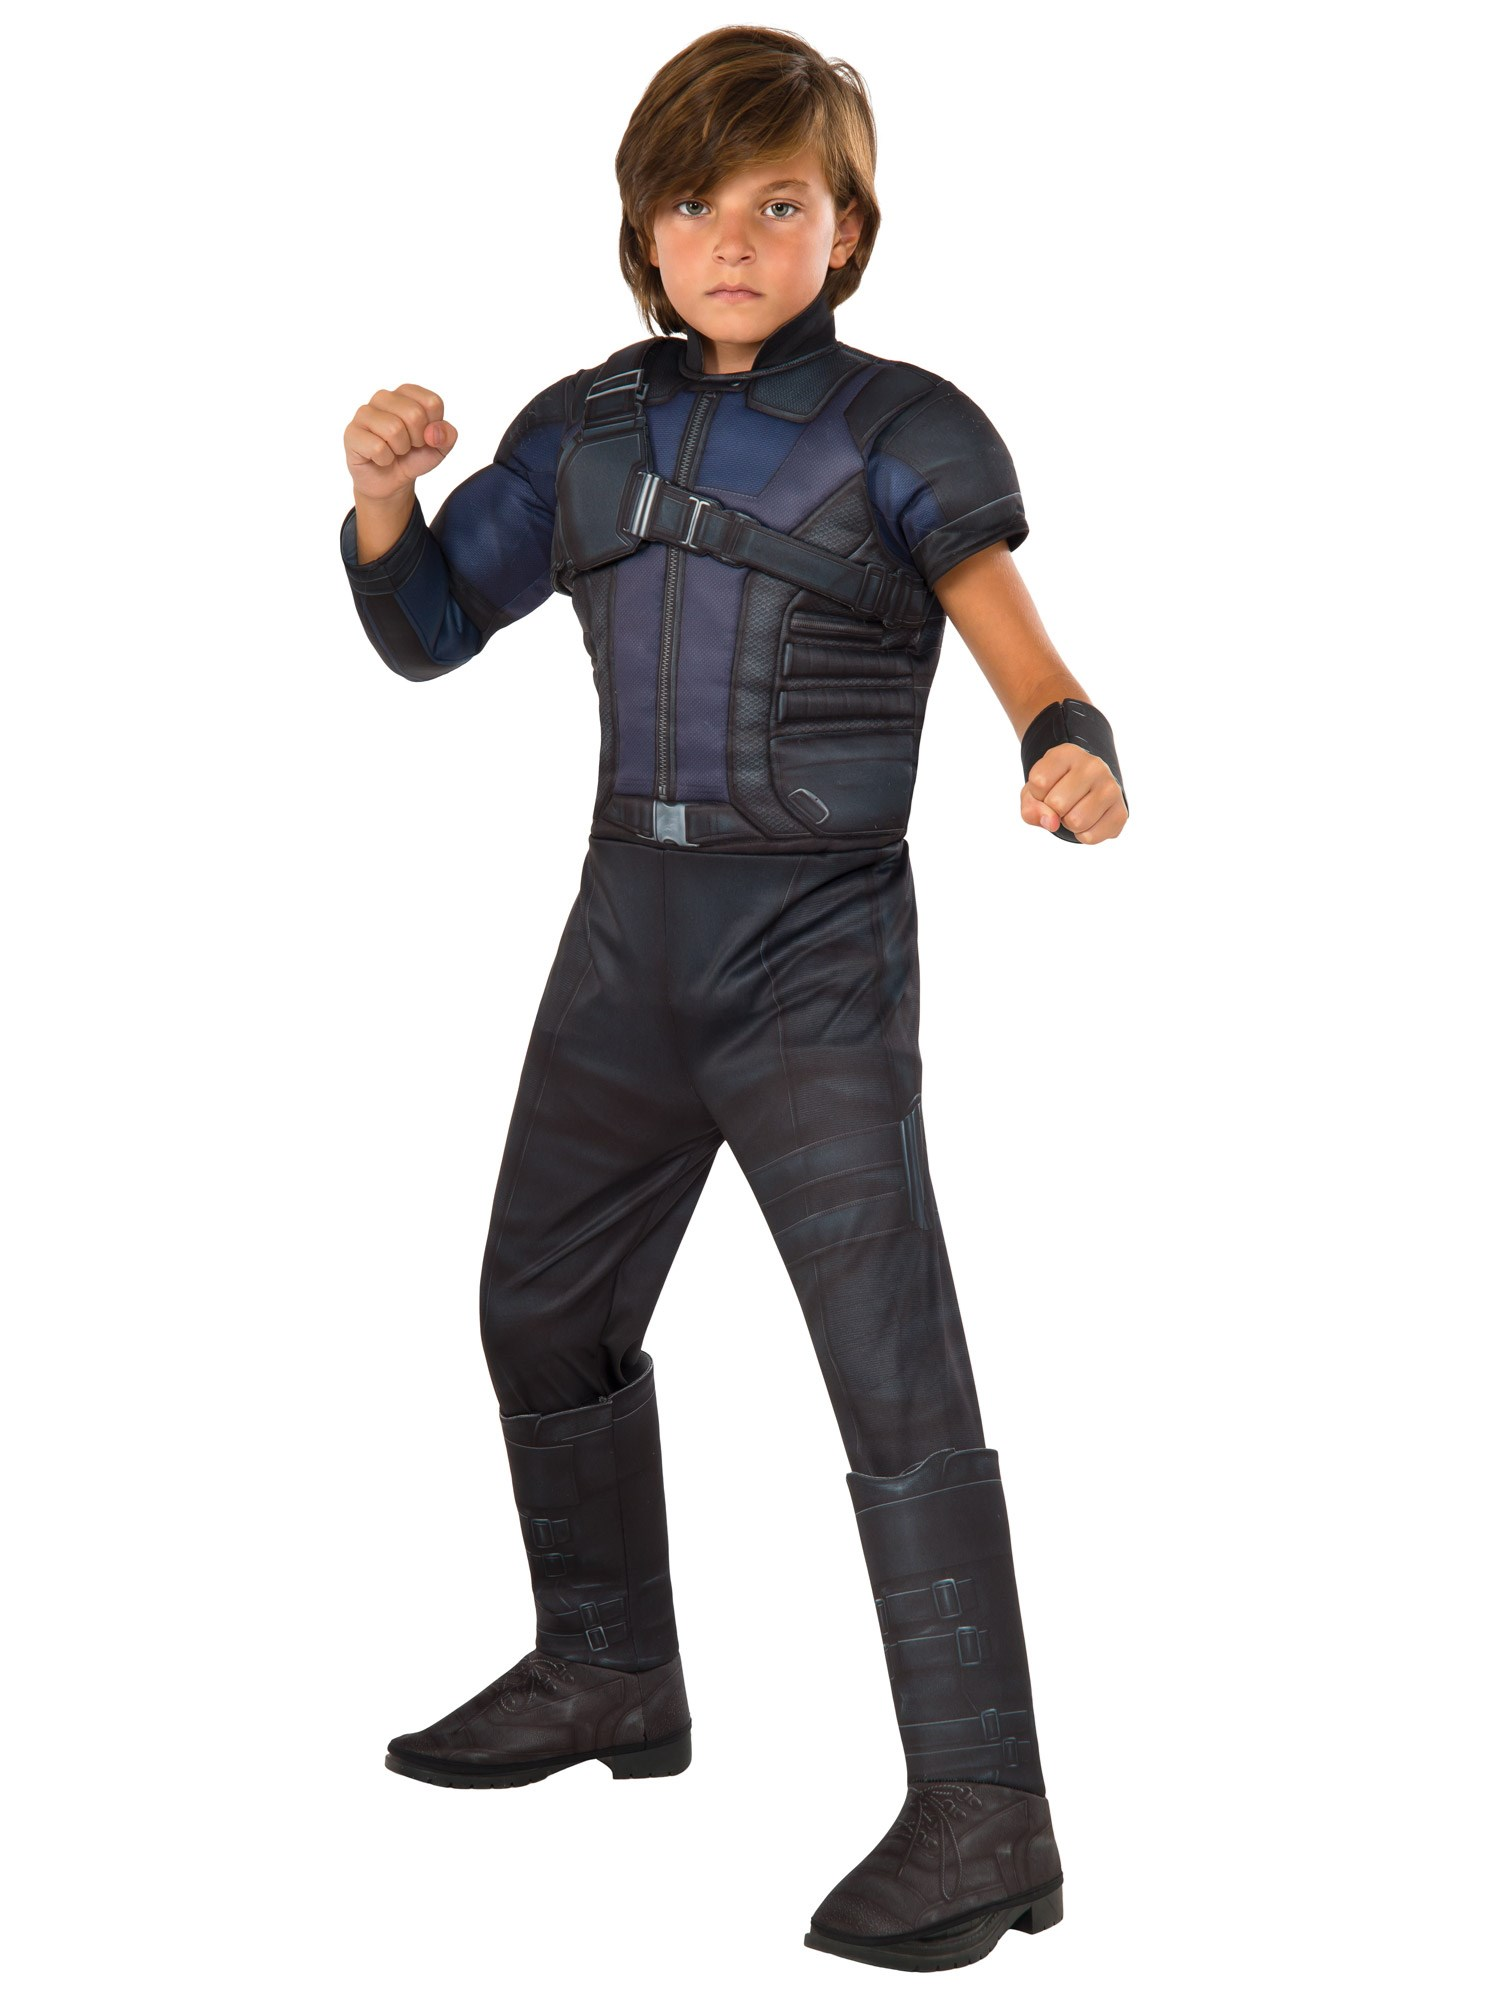 Avengers 2 - Age of Ultron: Kids Hawkeye Costume Large (12-14)